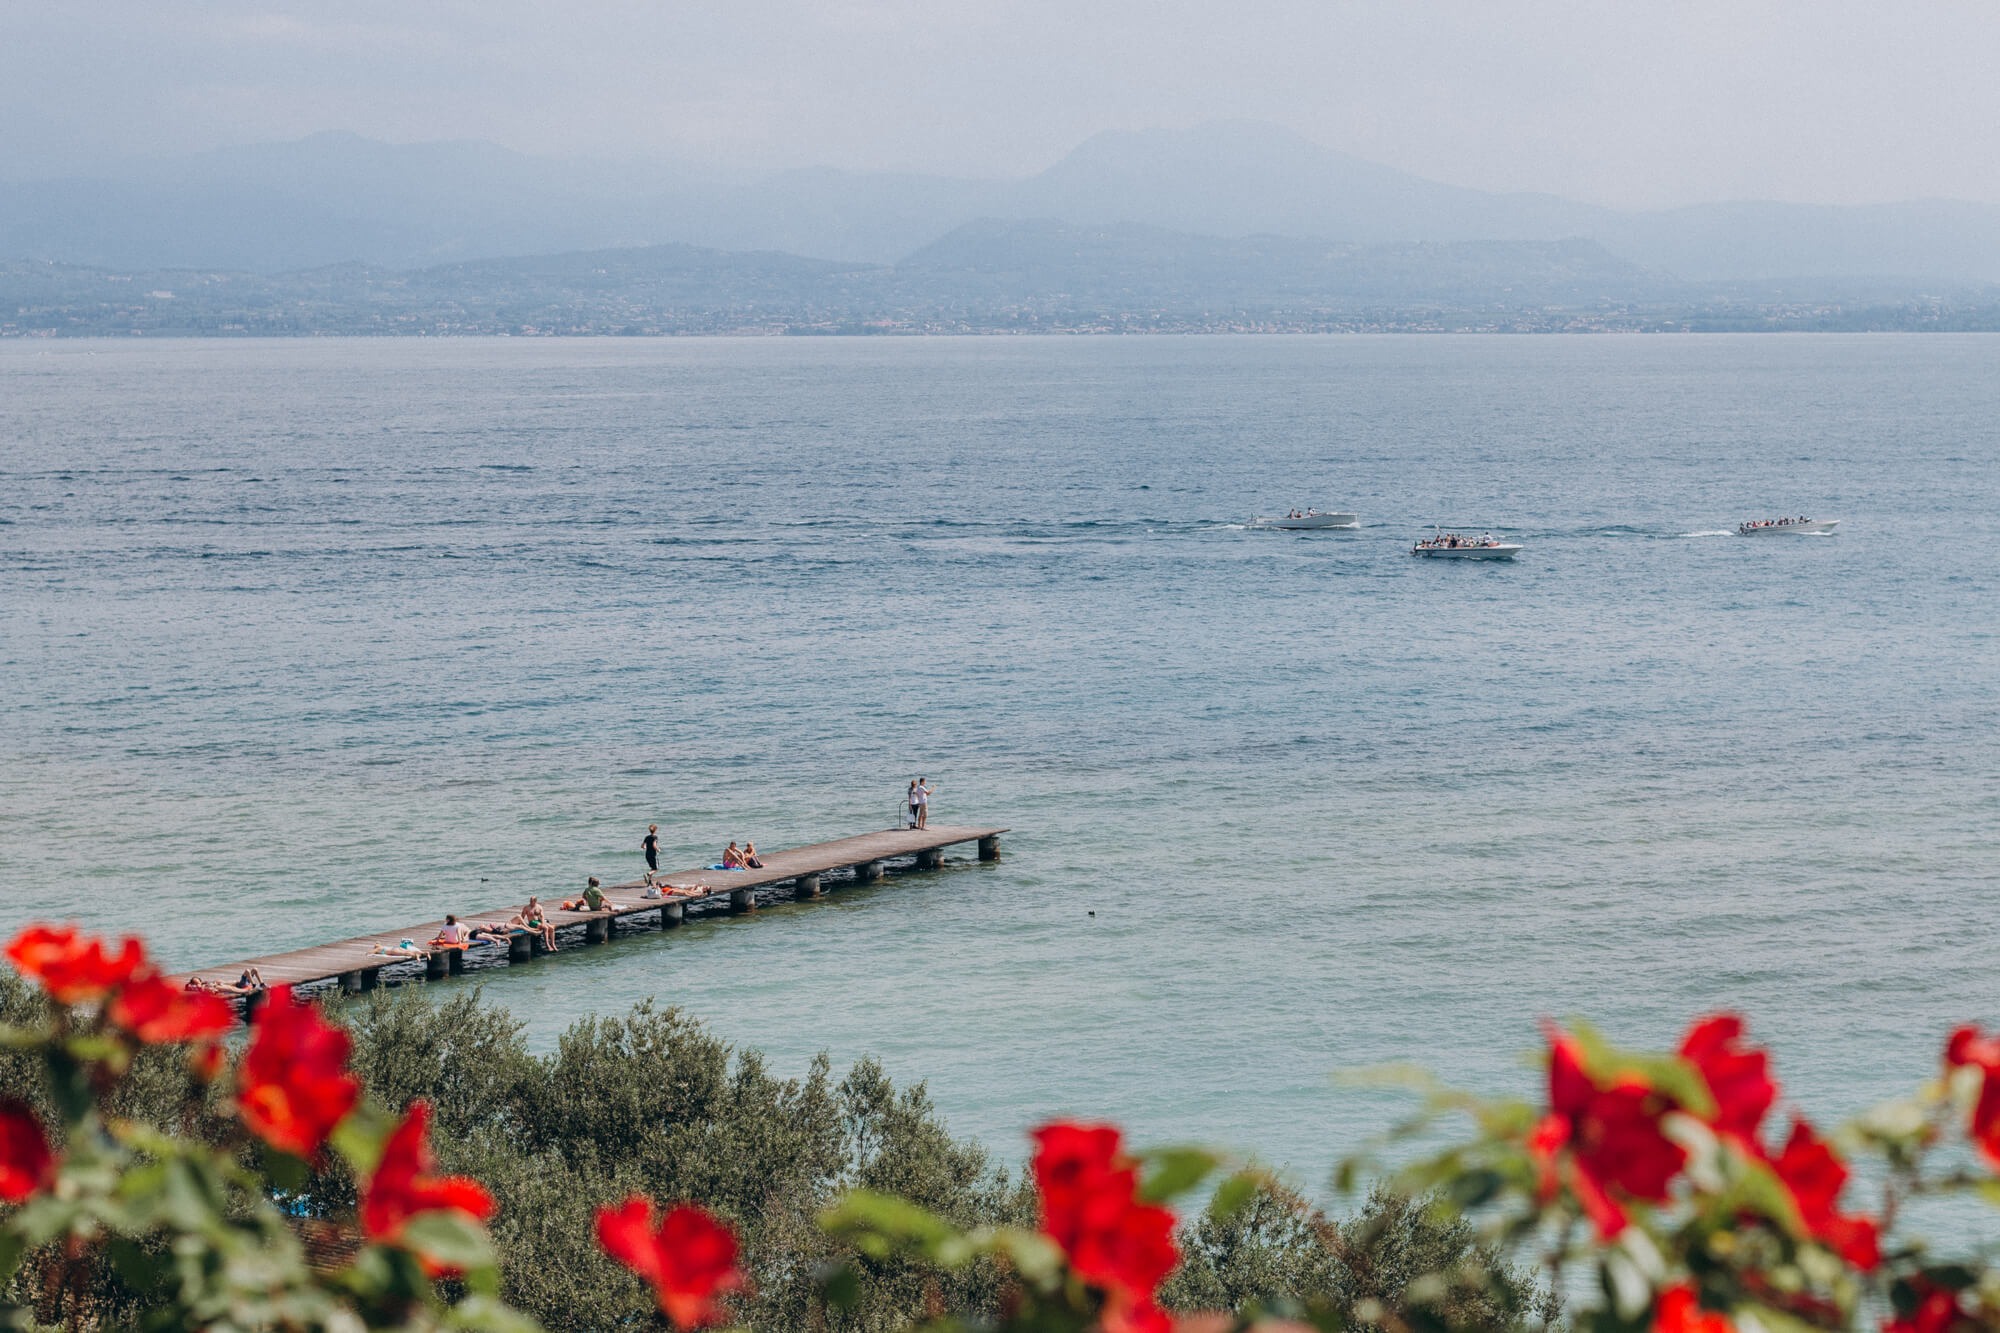 Photowalk in Sirmione on Lake Garda-9